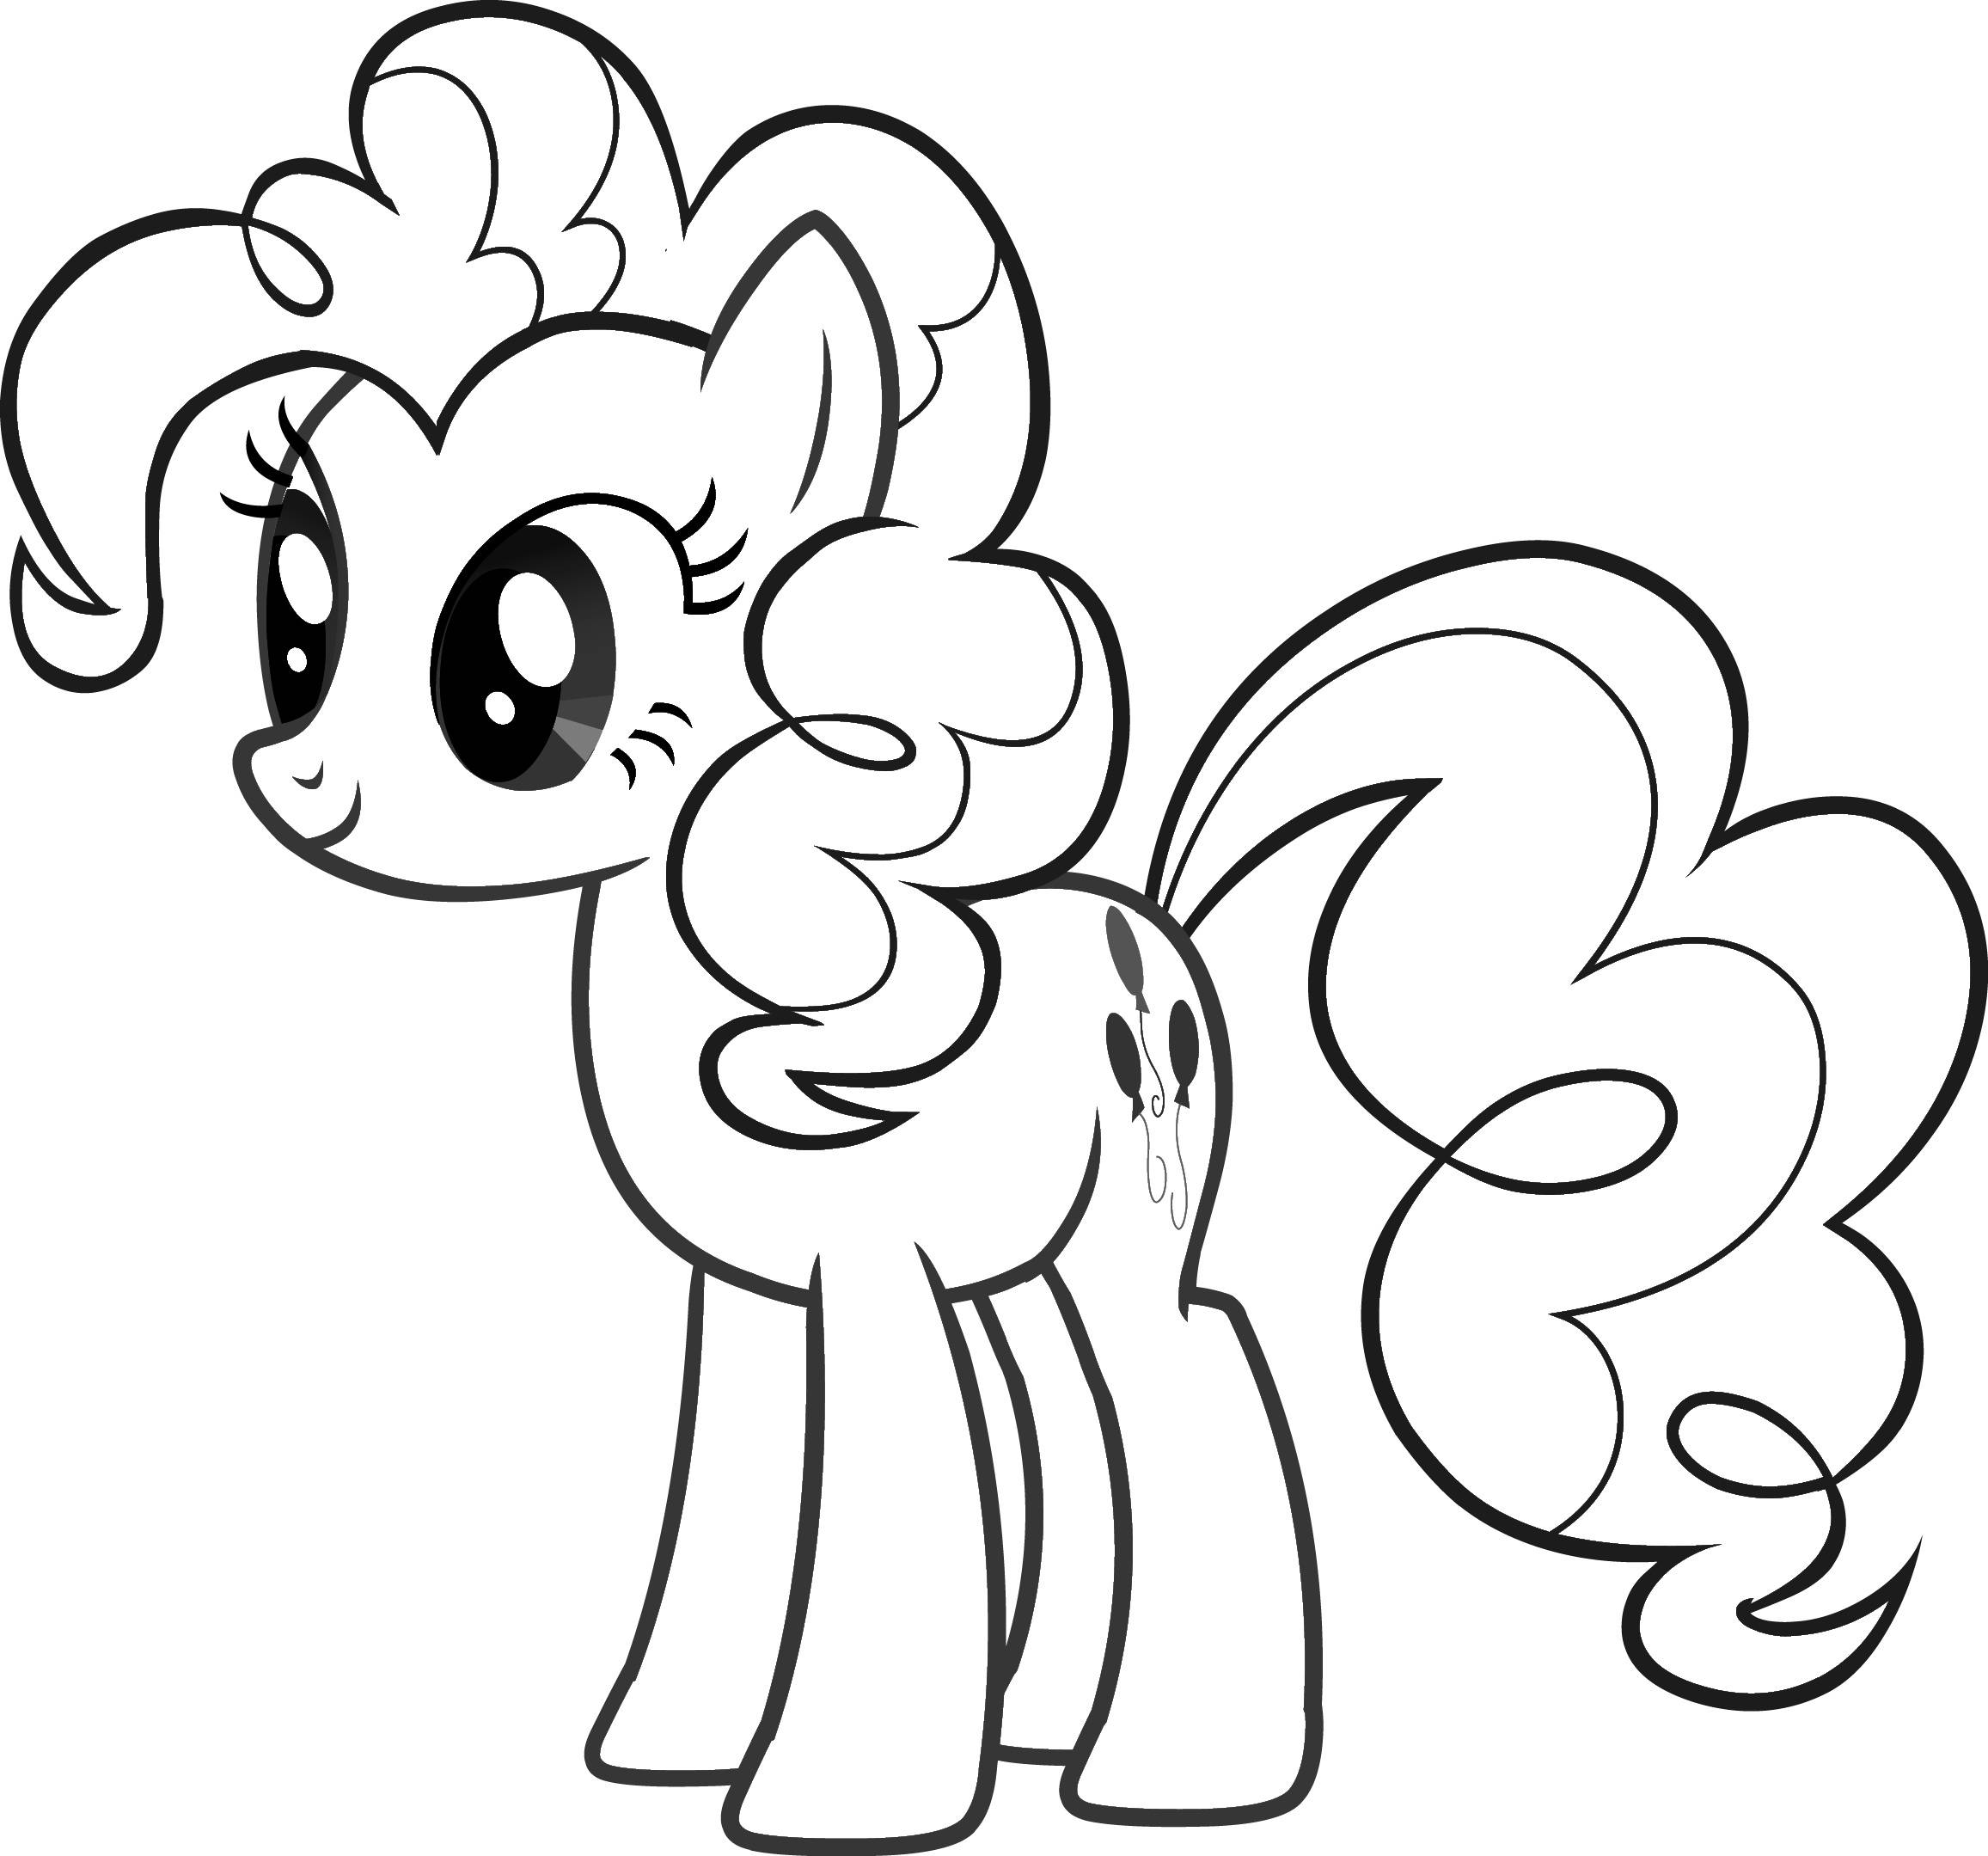 my little pony colouring pages to print my little pony coloring pages team colors little print colouring to pages pony my